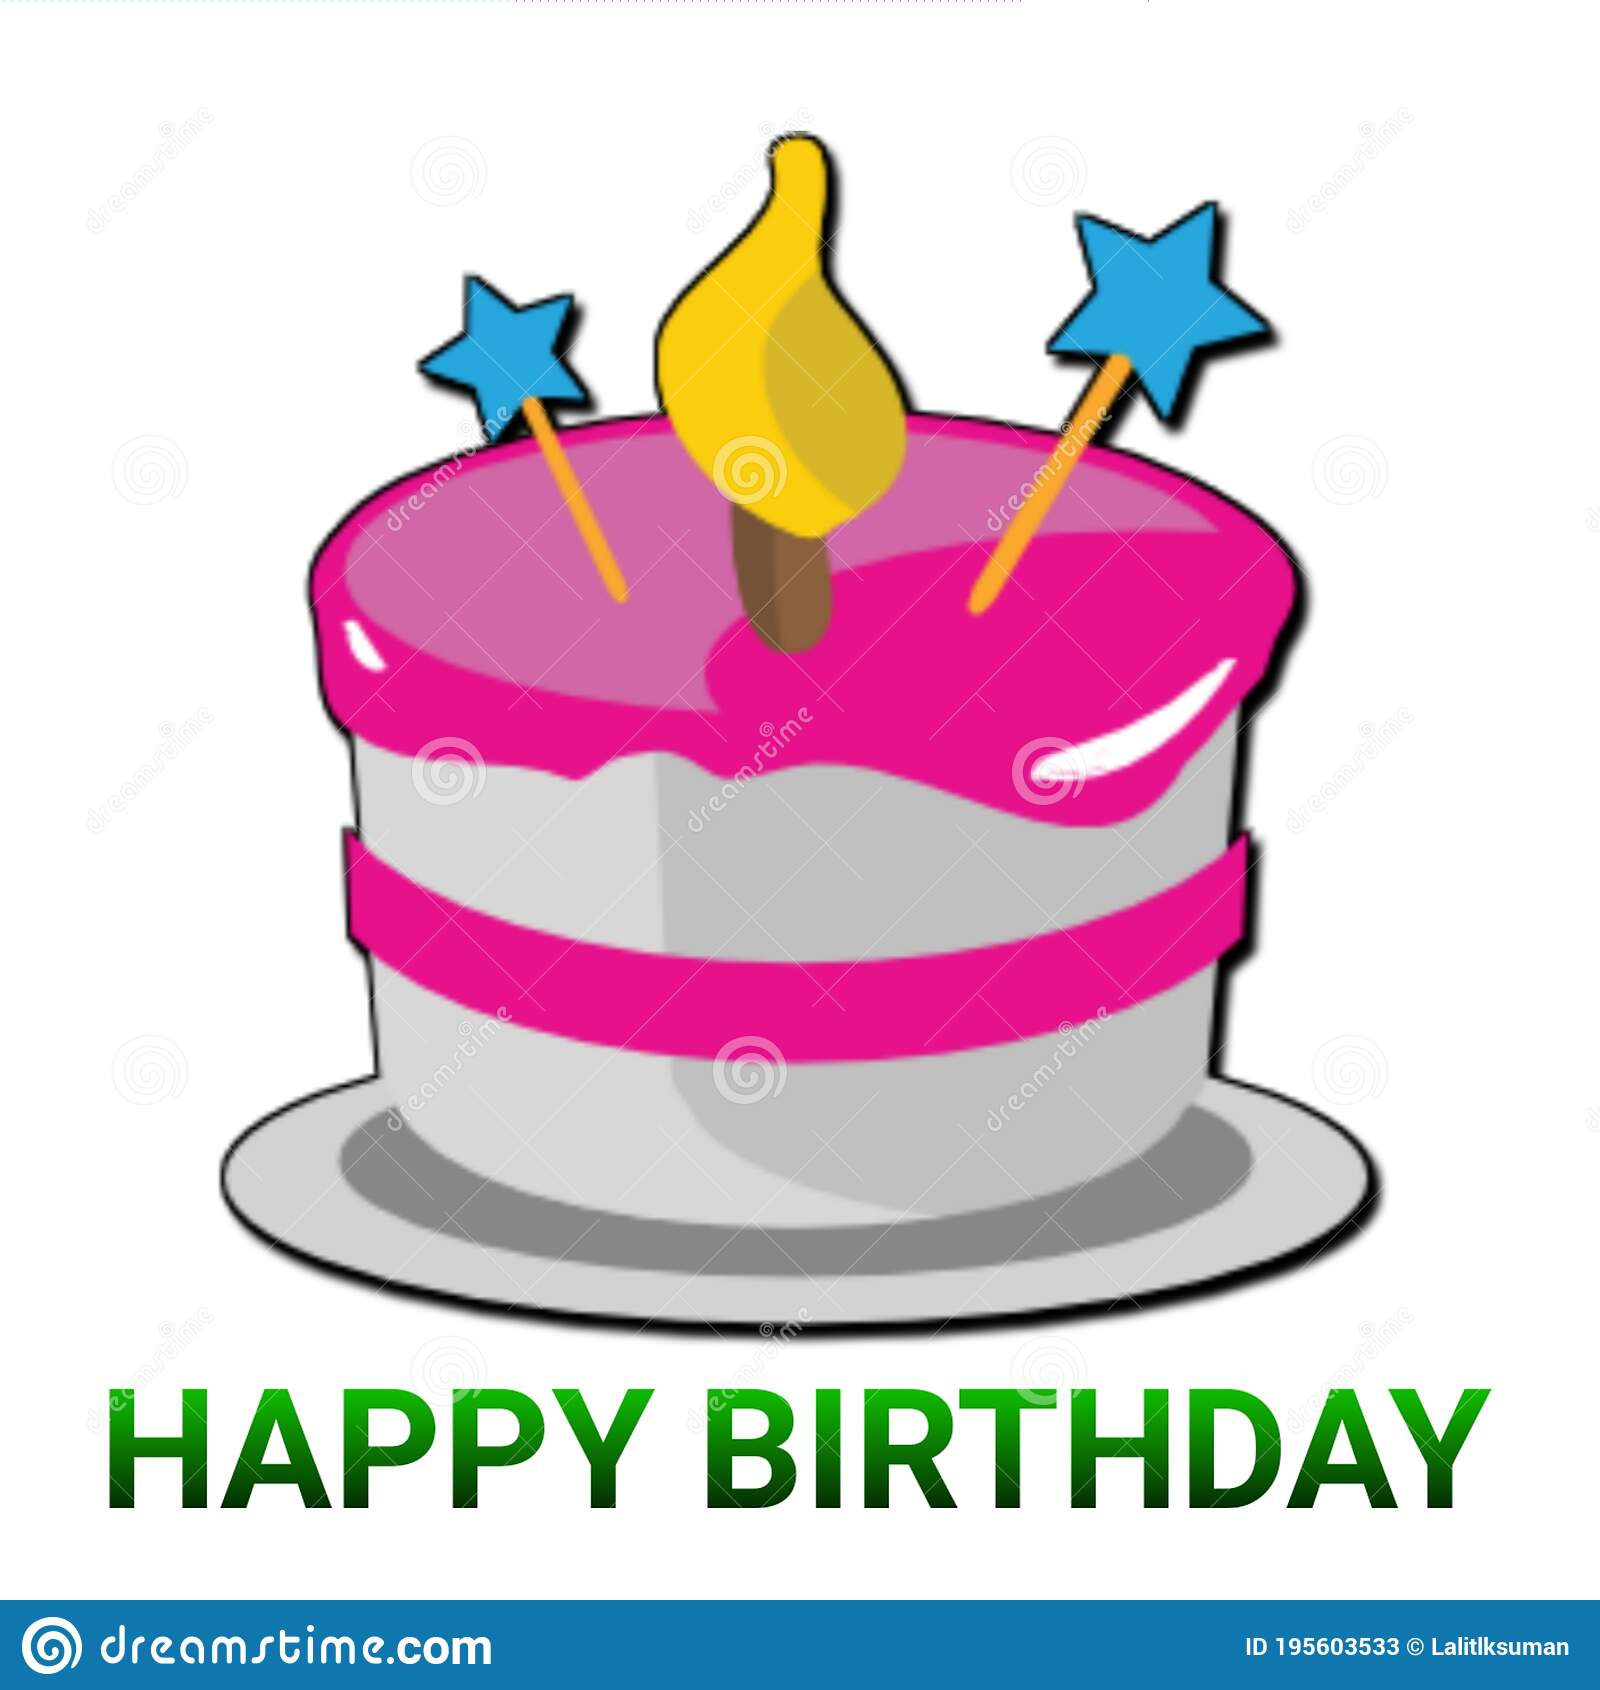 Cake Png Stock Illustrations 1 224 Cake Png Stock Illustrations Vectors Clipart Dreamstime